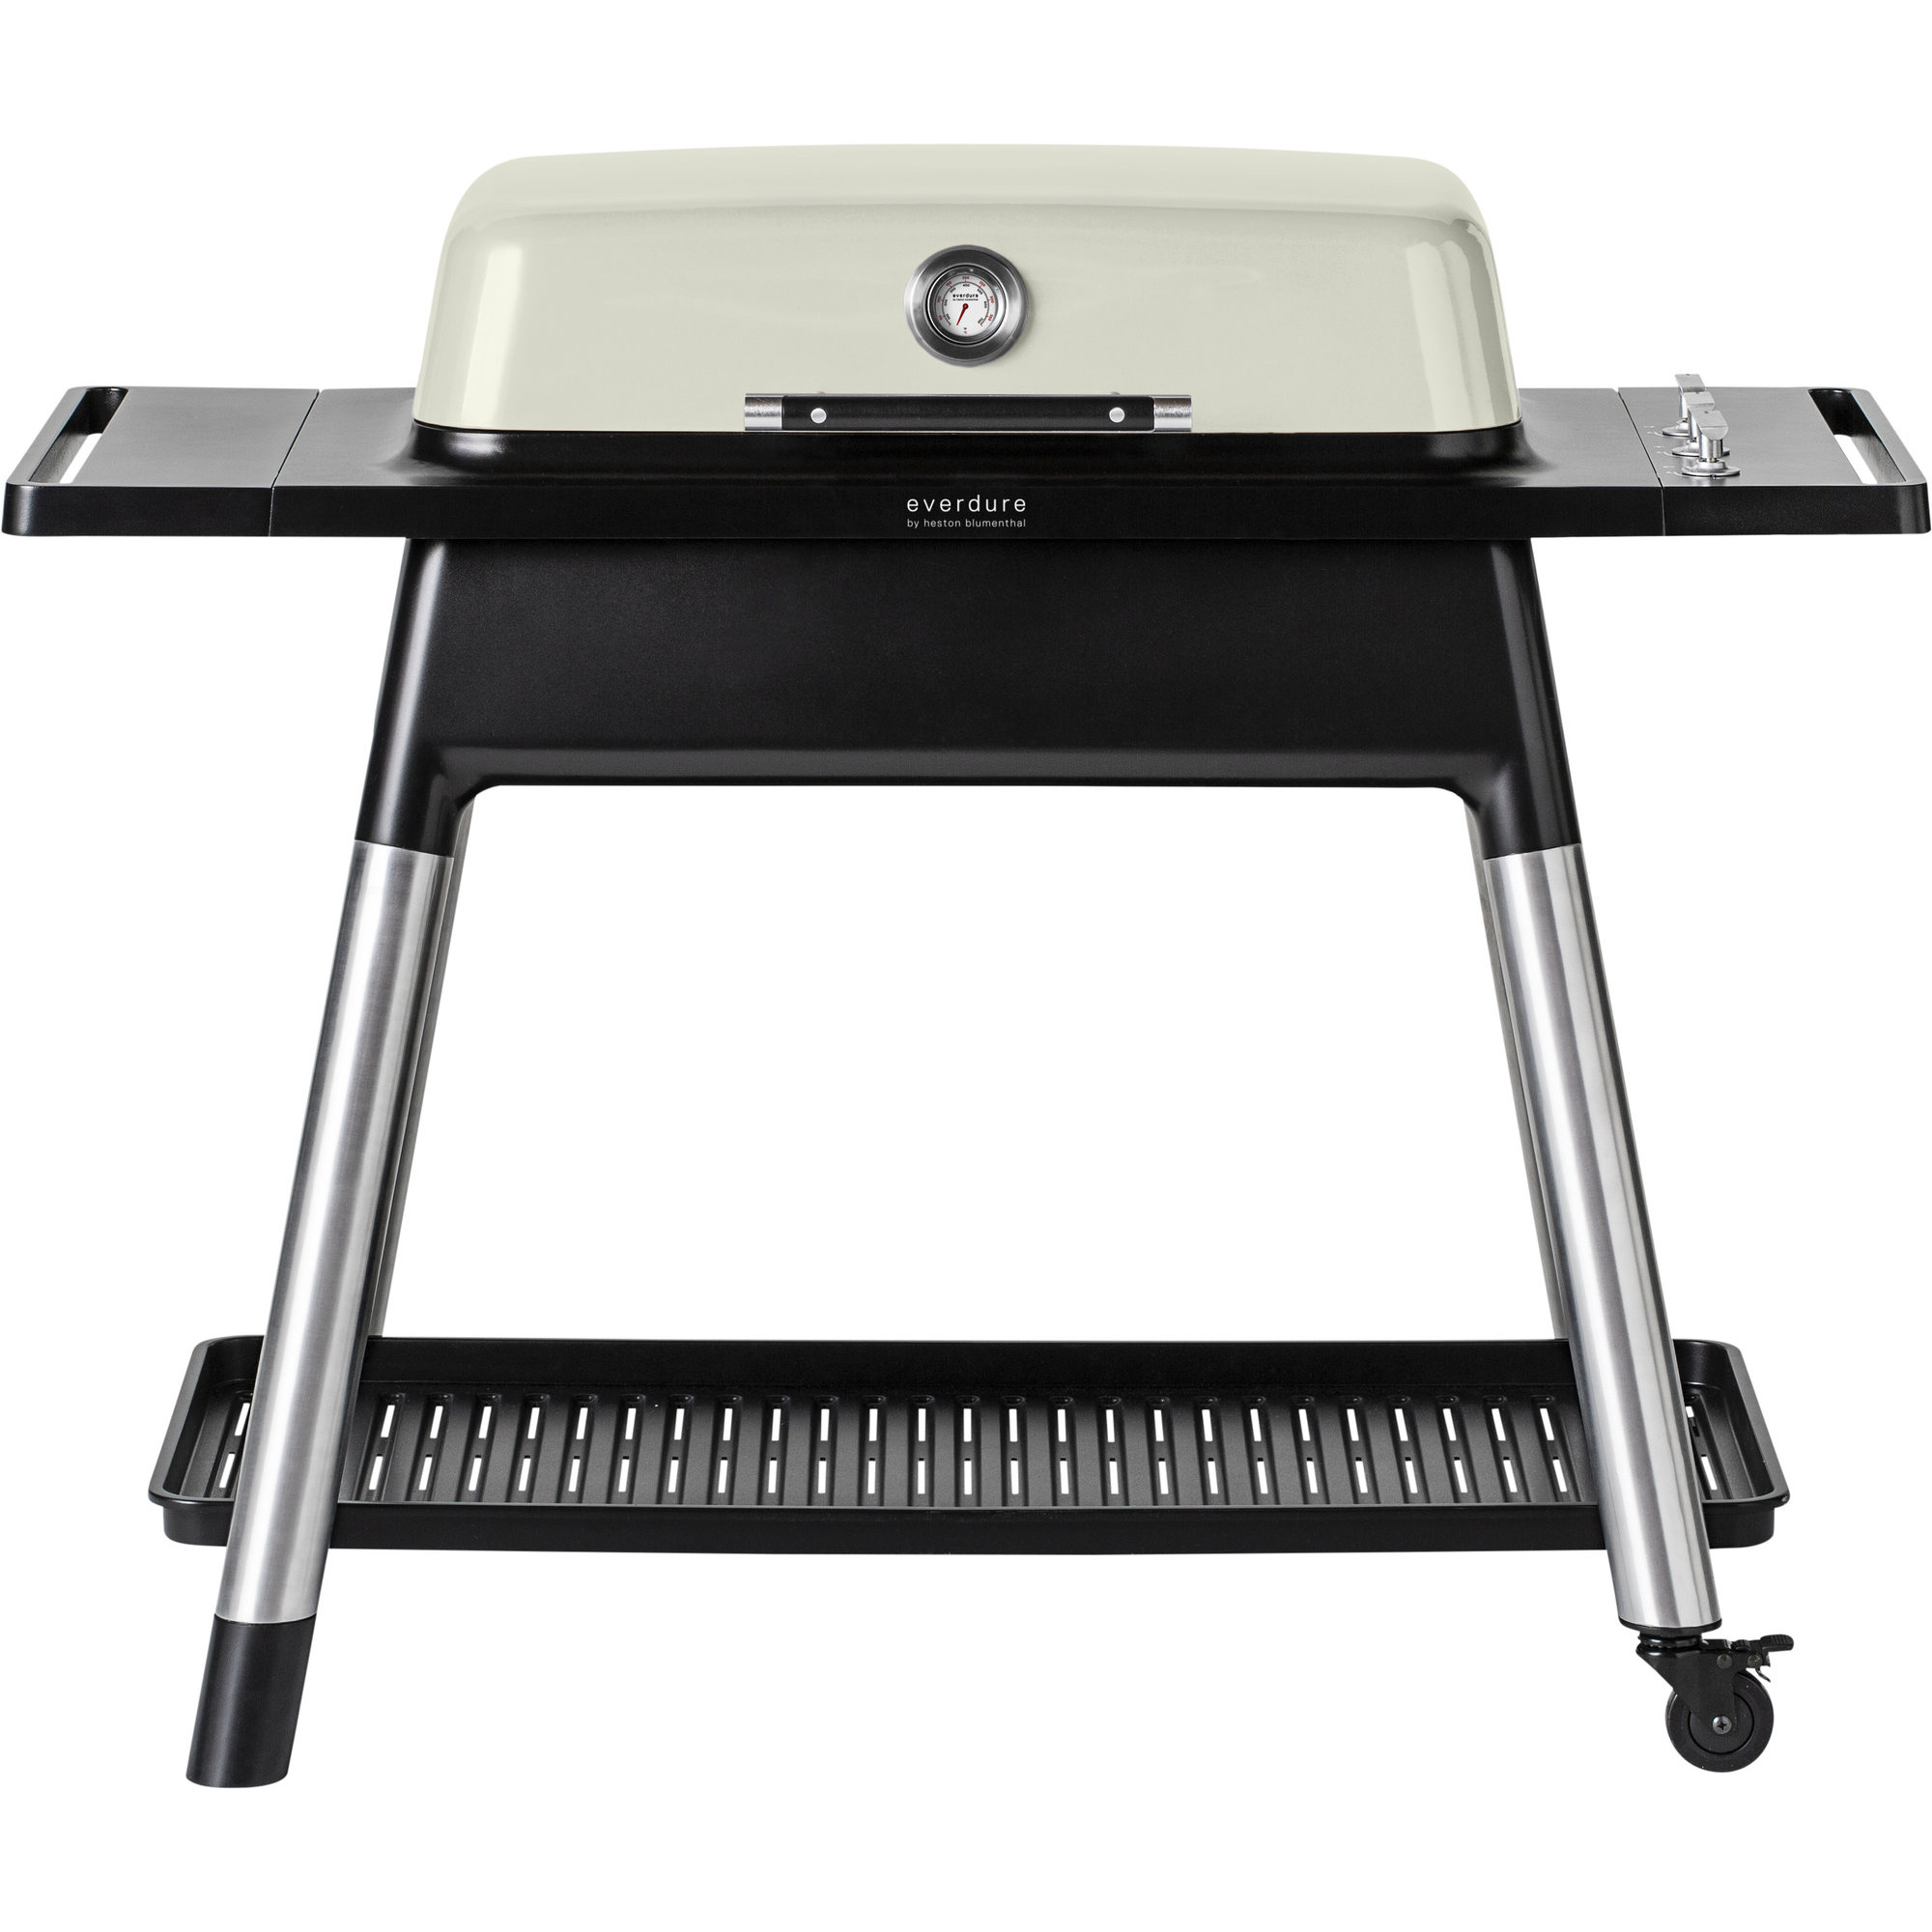 Everdure gas grill HBG3S Furnace - stone